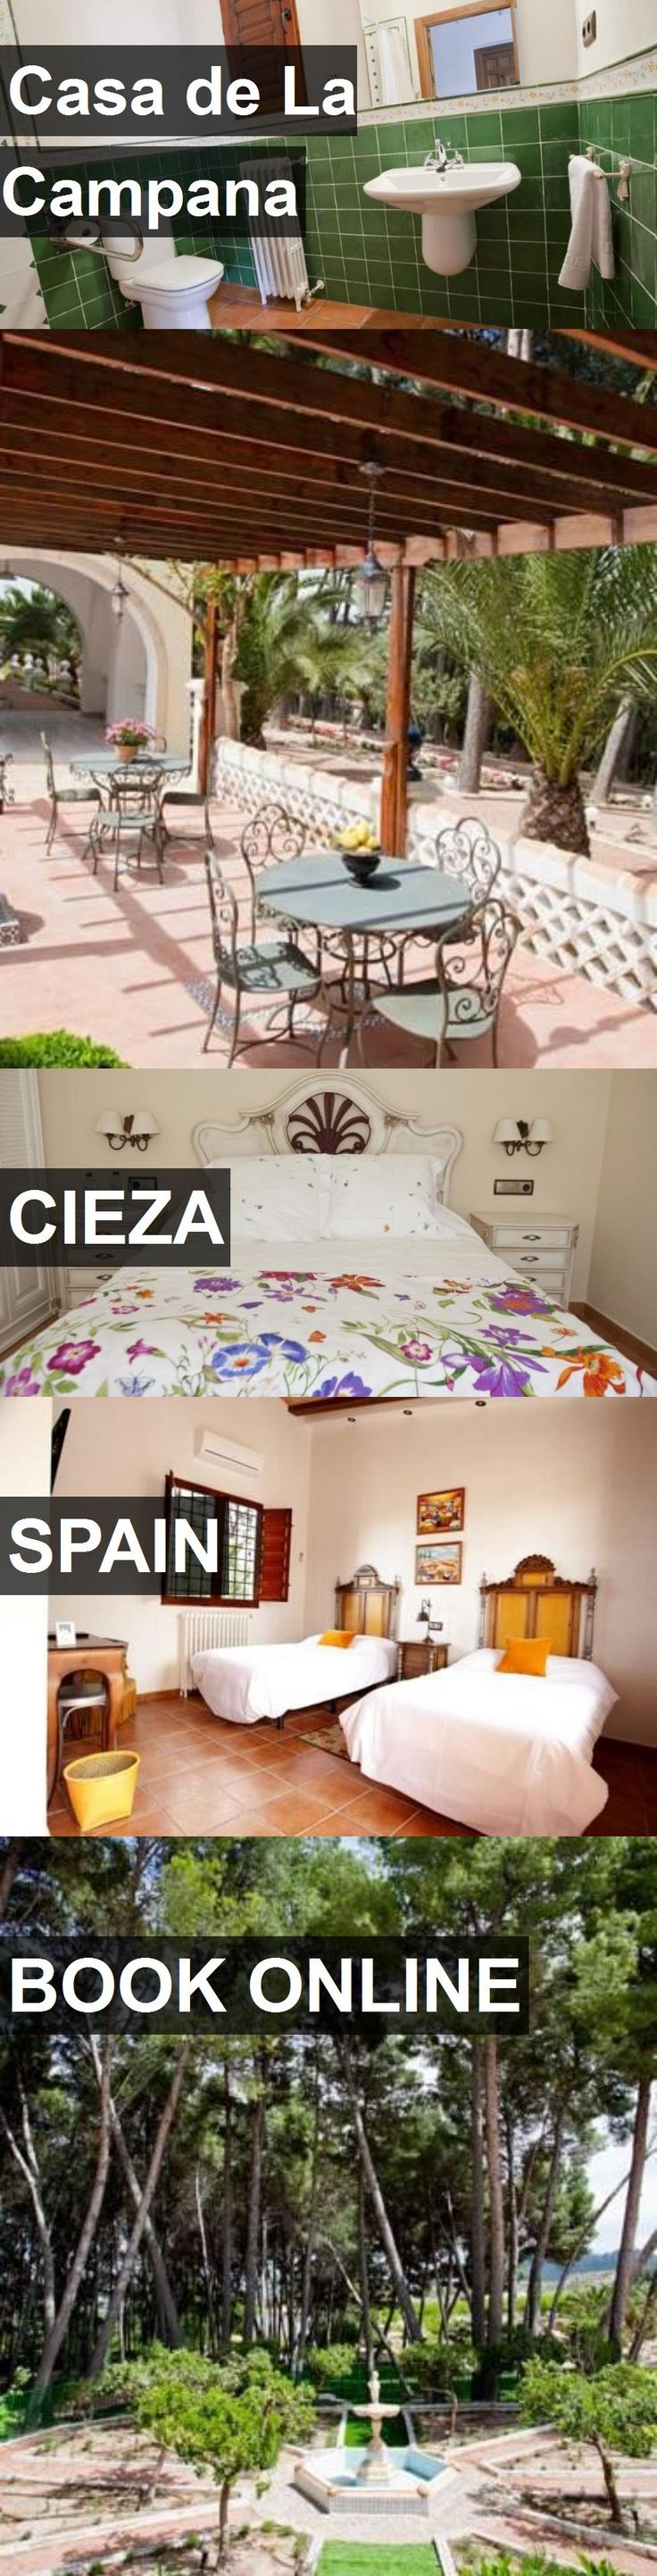 Hotel Casa de La Campana in Cieza, Spain. For more information, photos, reviews and best prices please follow the link. #Spain #Cieza #travel #vacation #hotel